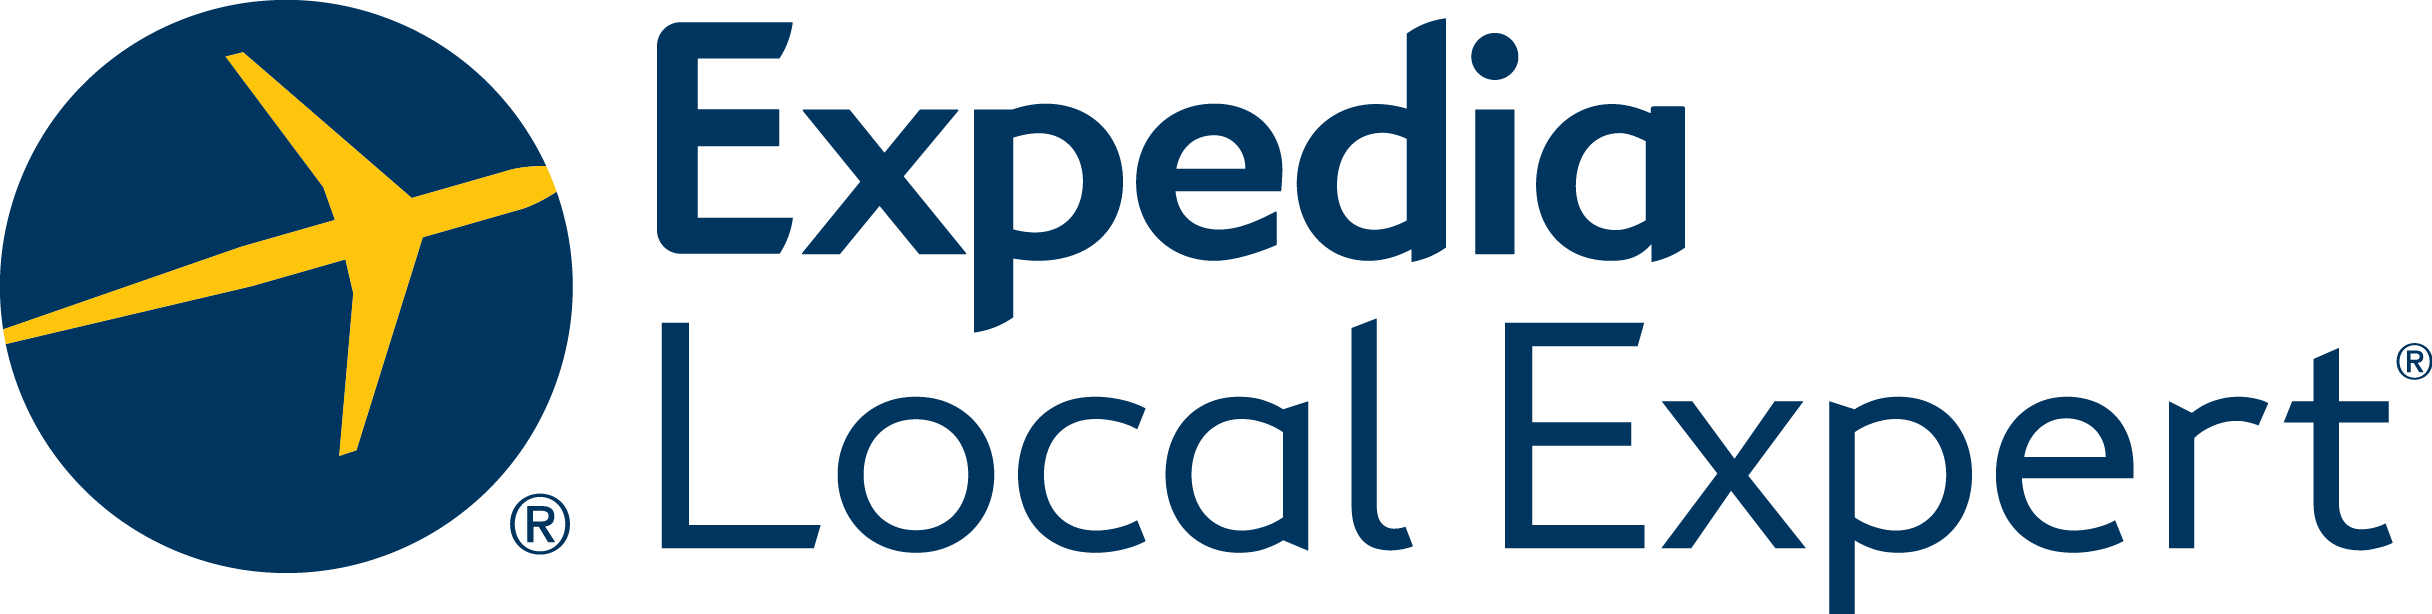 Expedia local expert.png